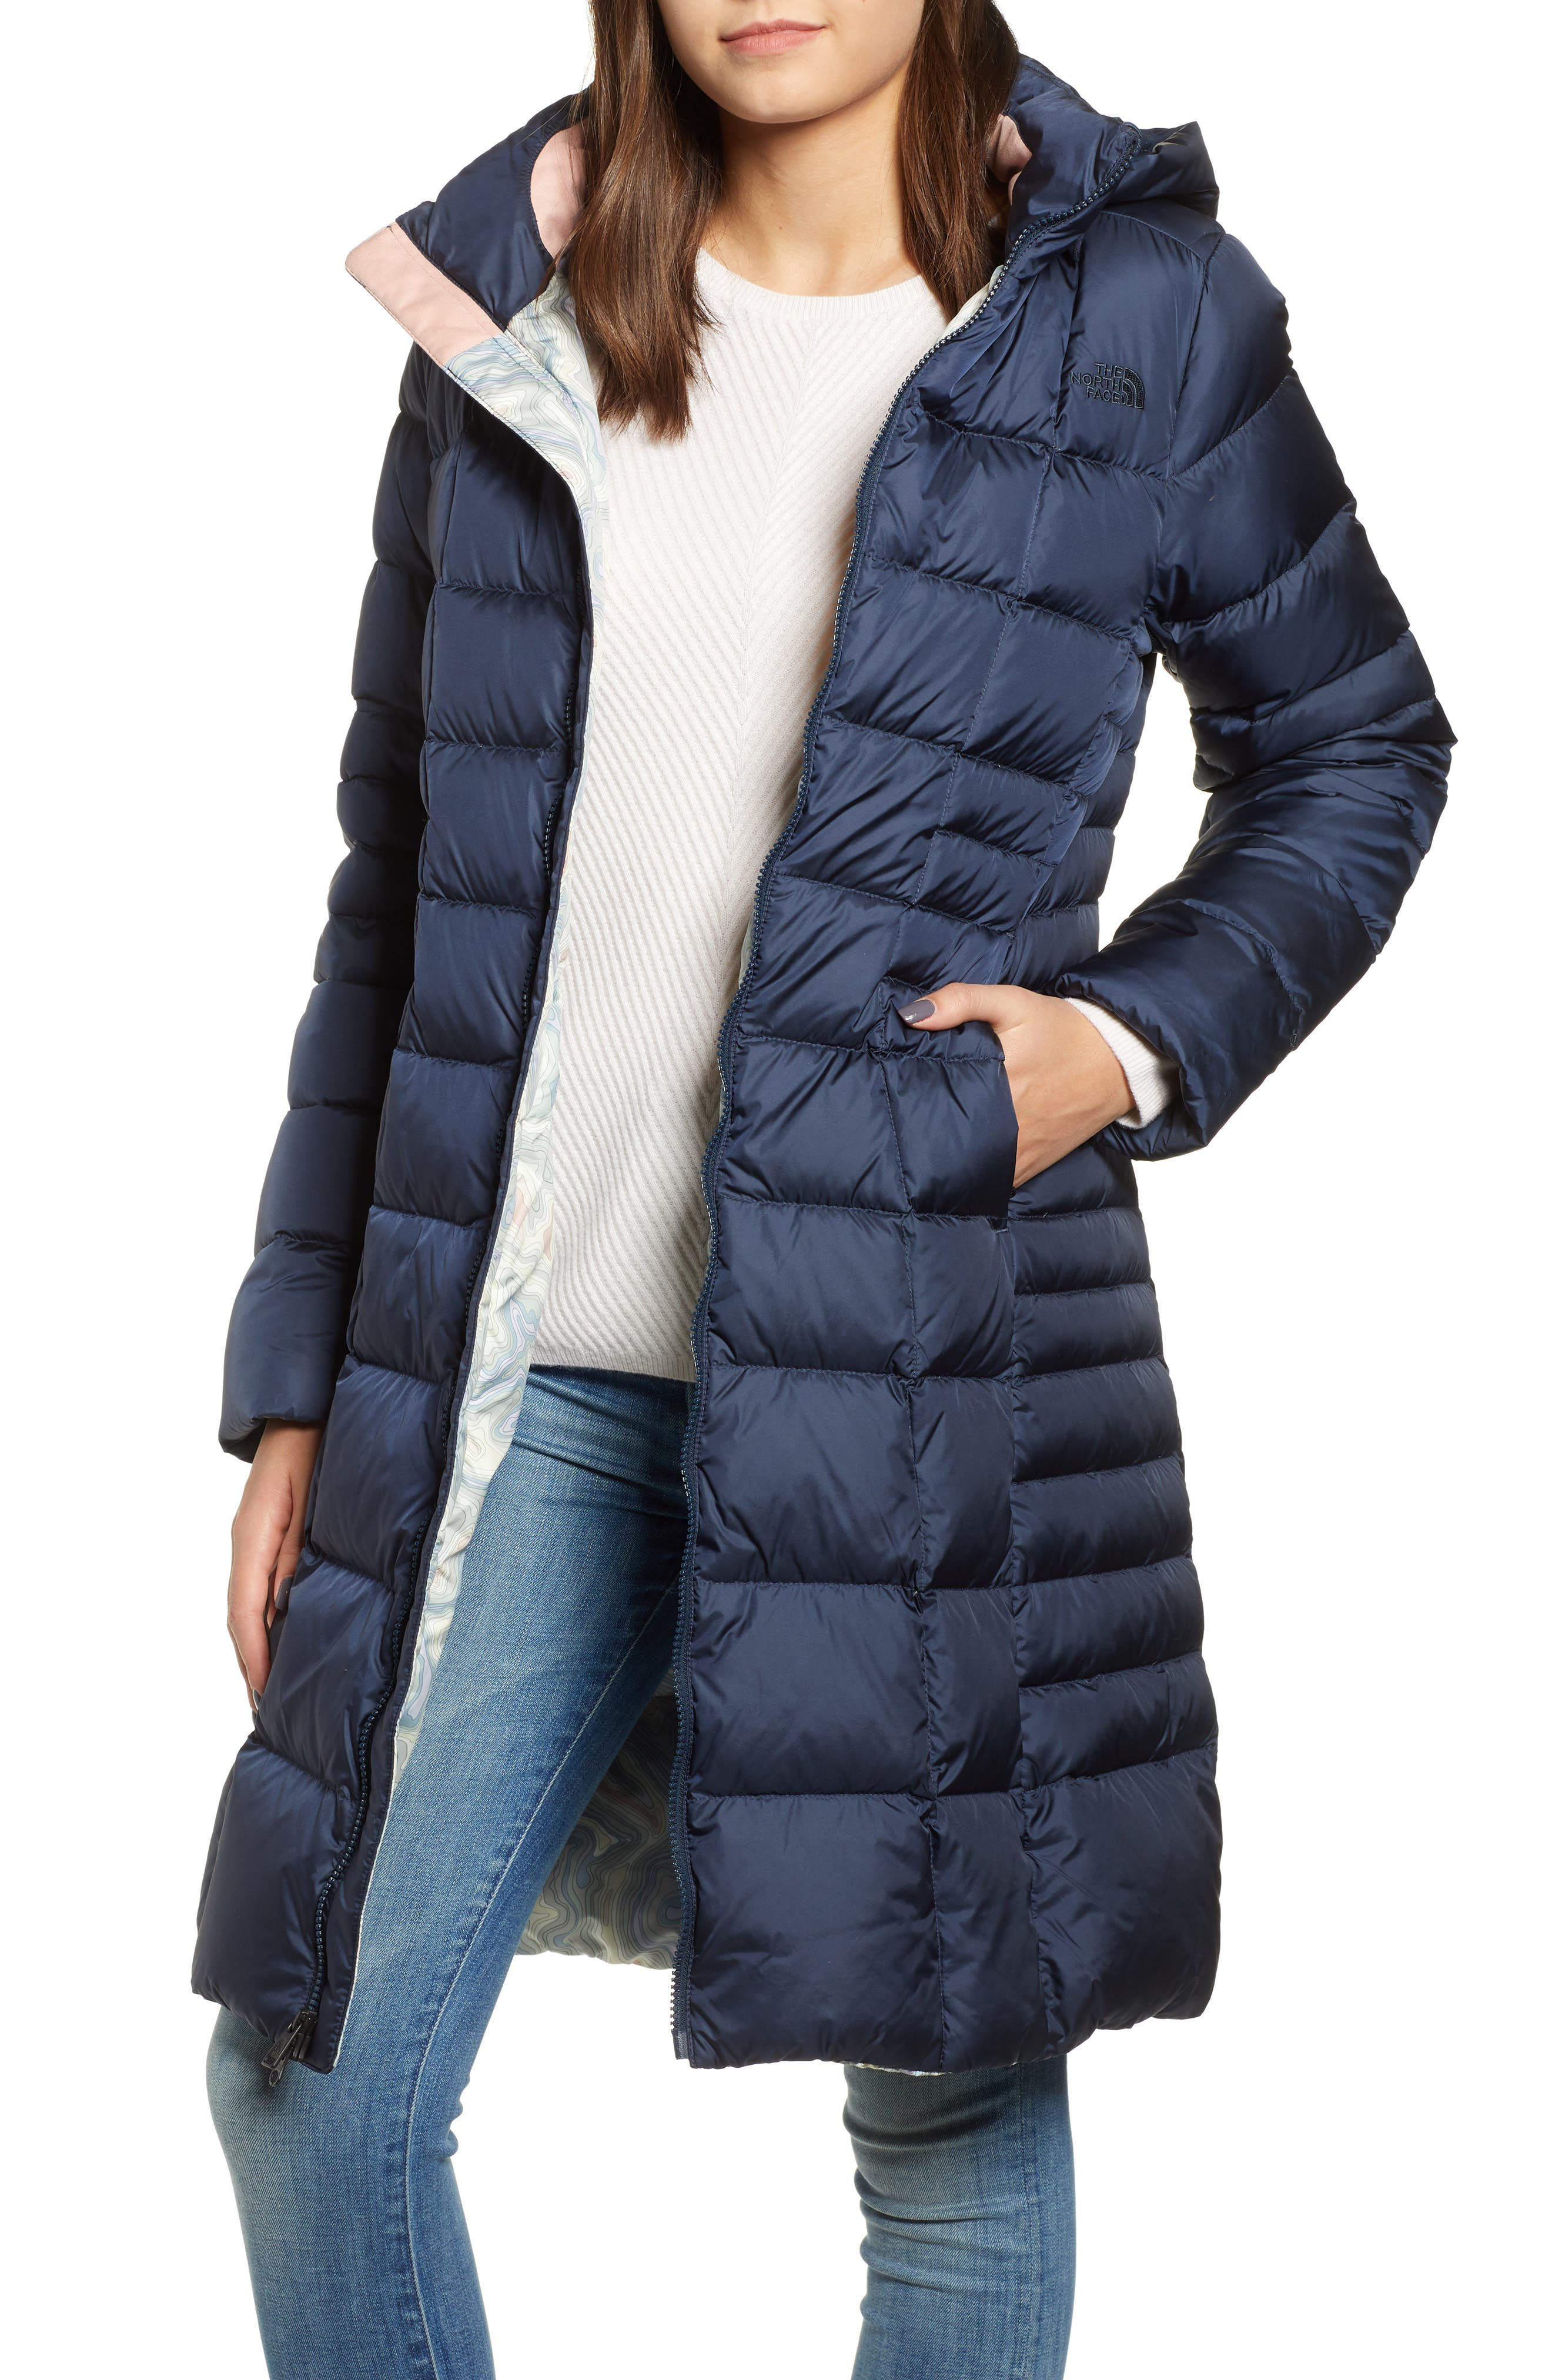 THE NORTH FACE, Metropolis II Hooded Water Resistant Down Parka, Main thumbnail 1, color, URBAN NAVY/ MULTI TOPO PRINT